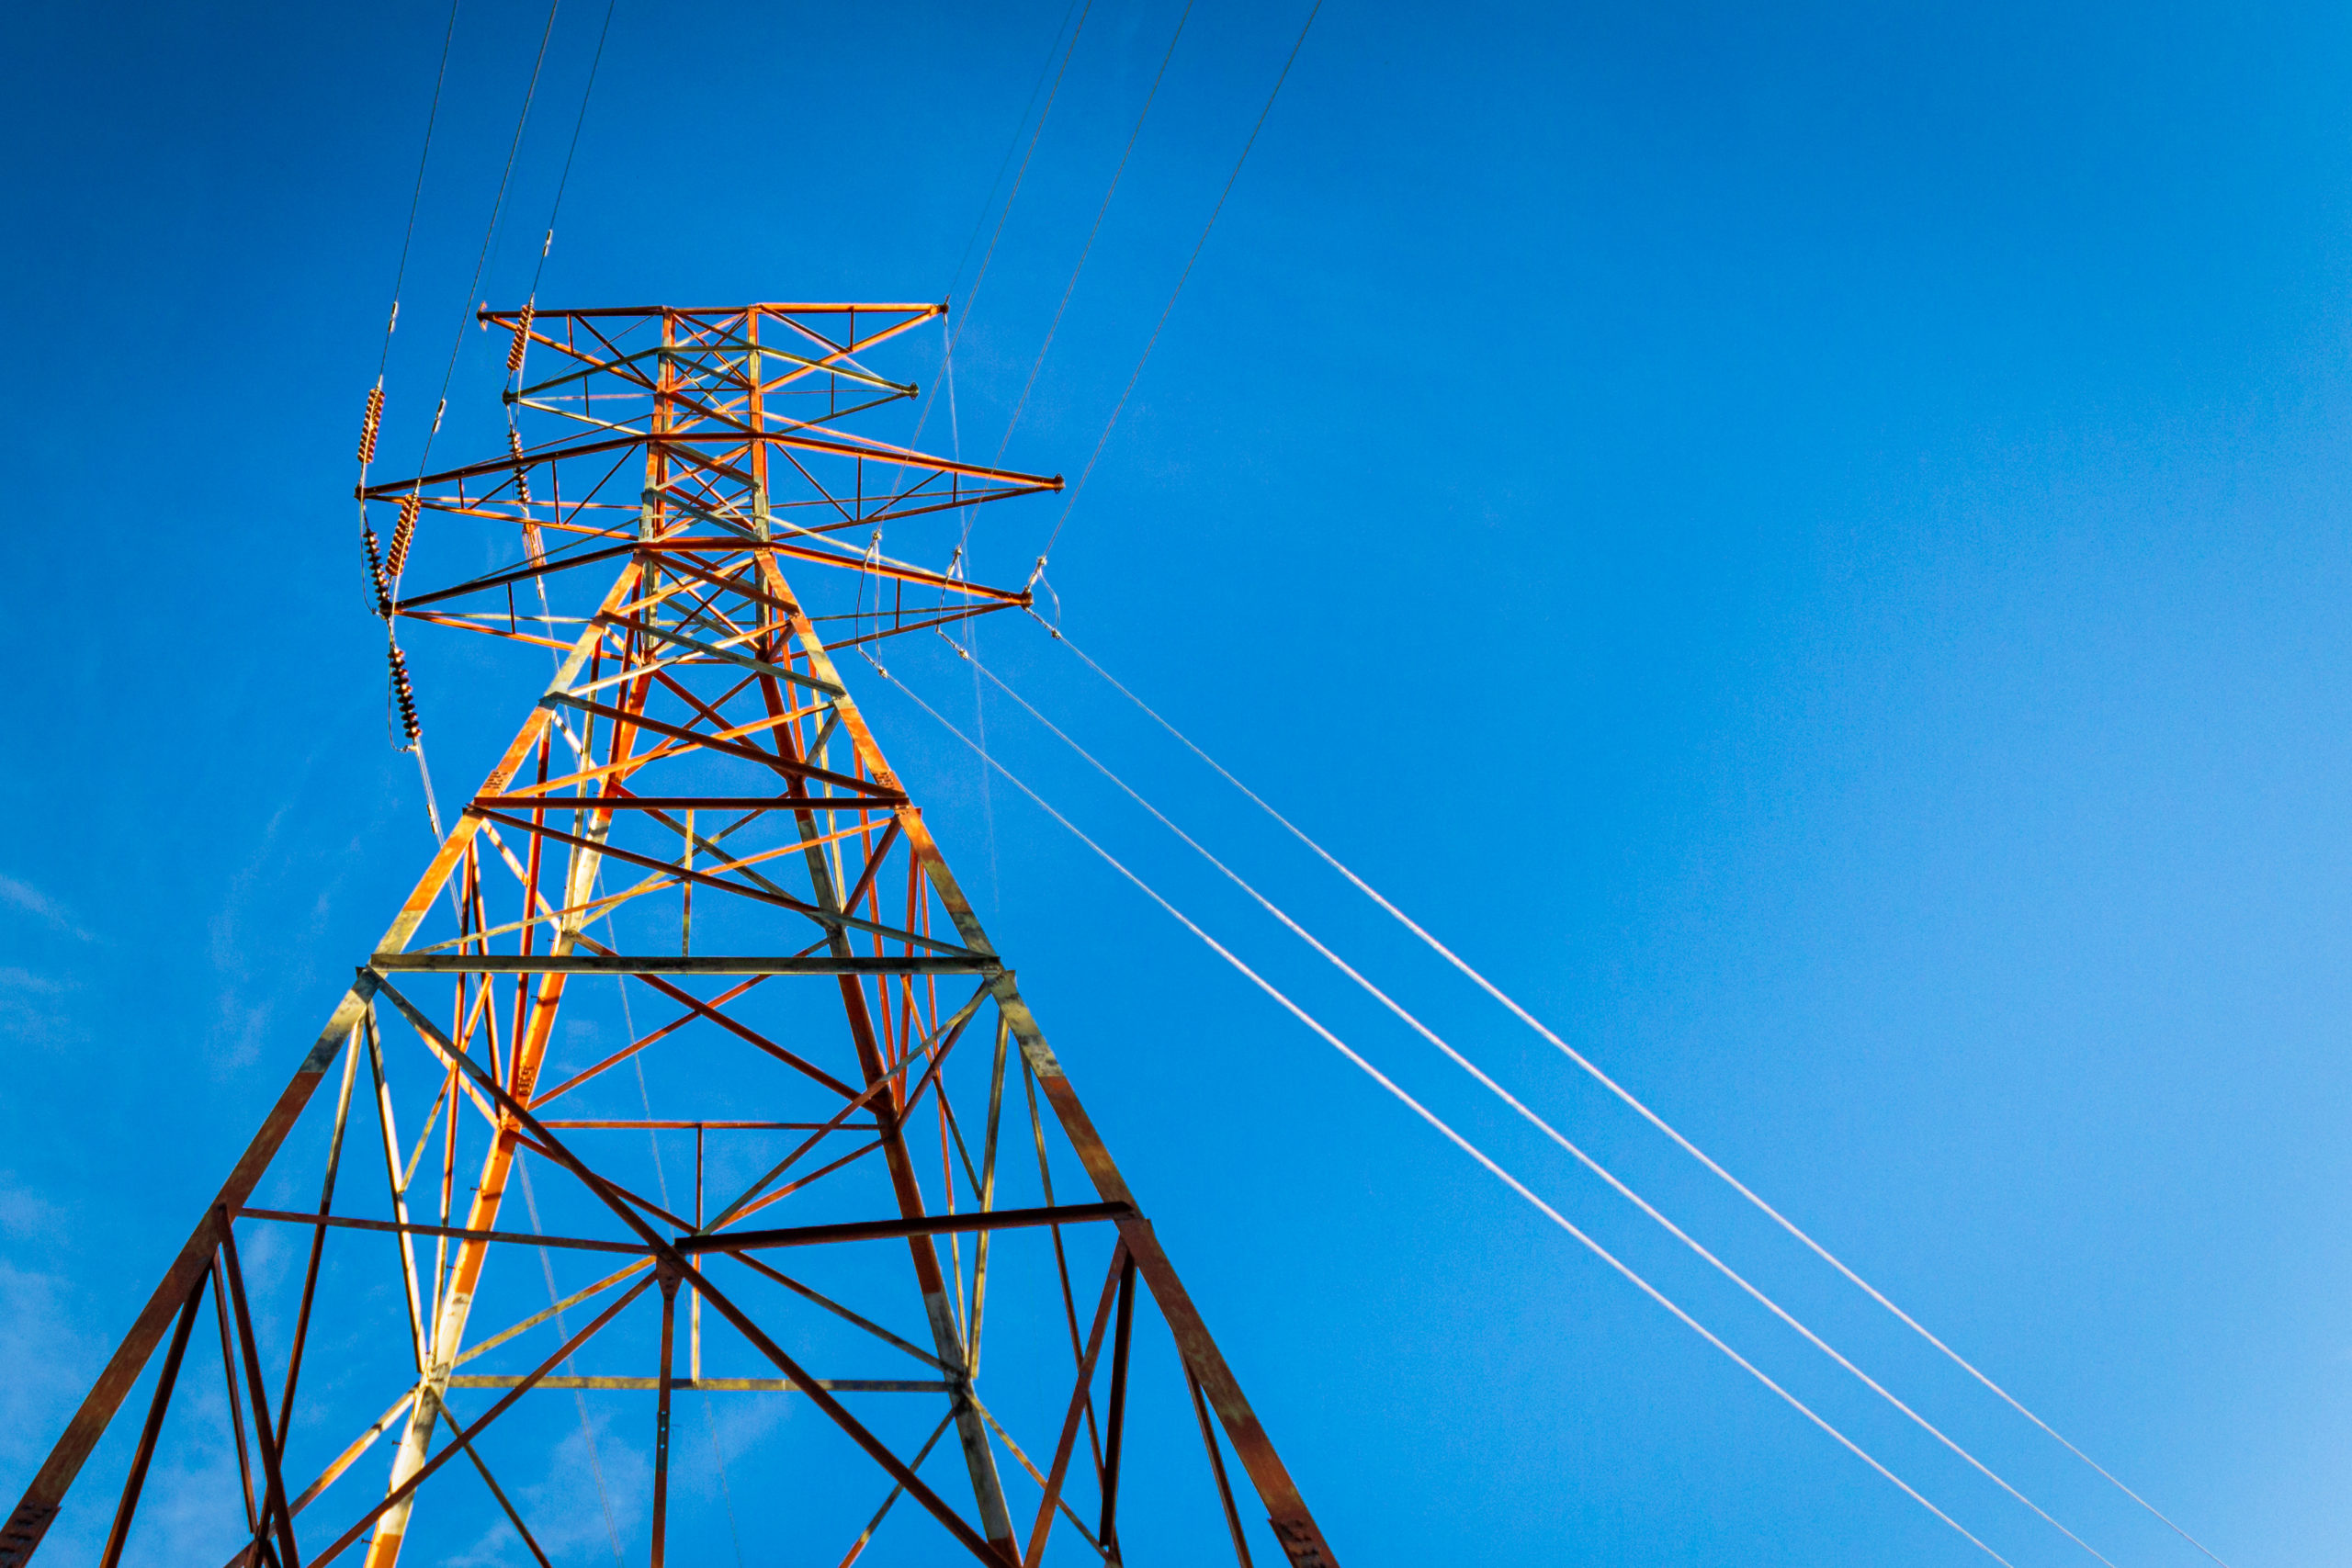 Electrical wires against blue sky, Maine, USA.